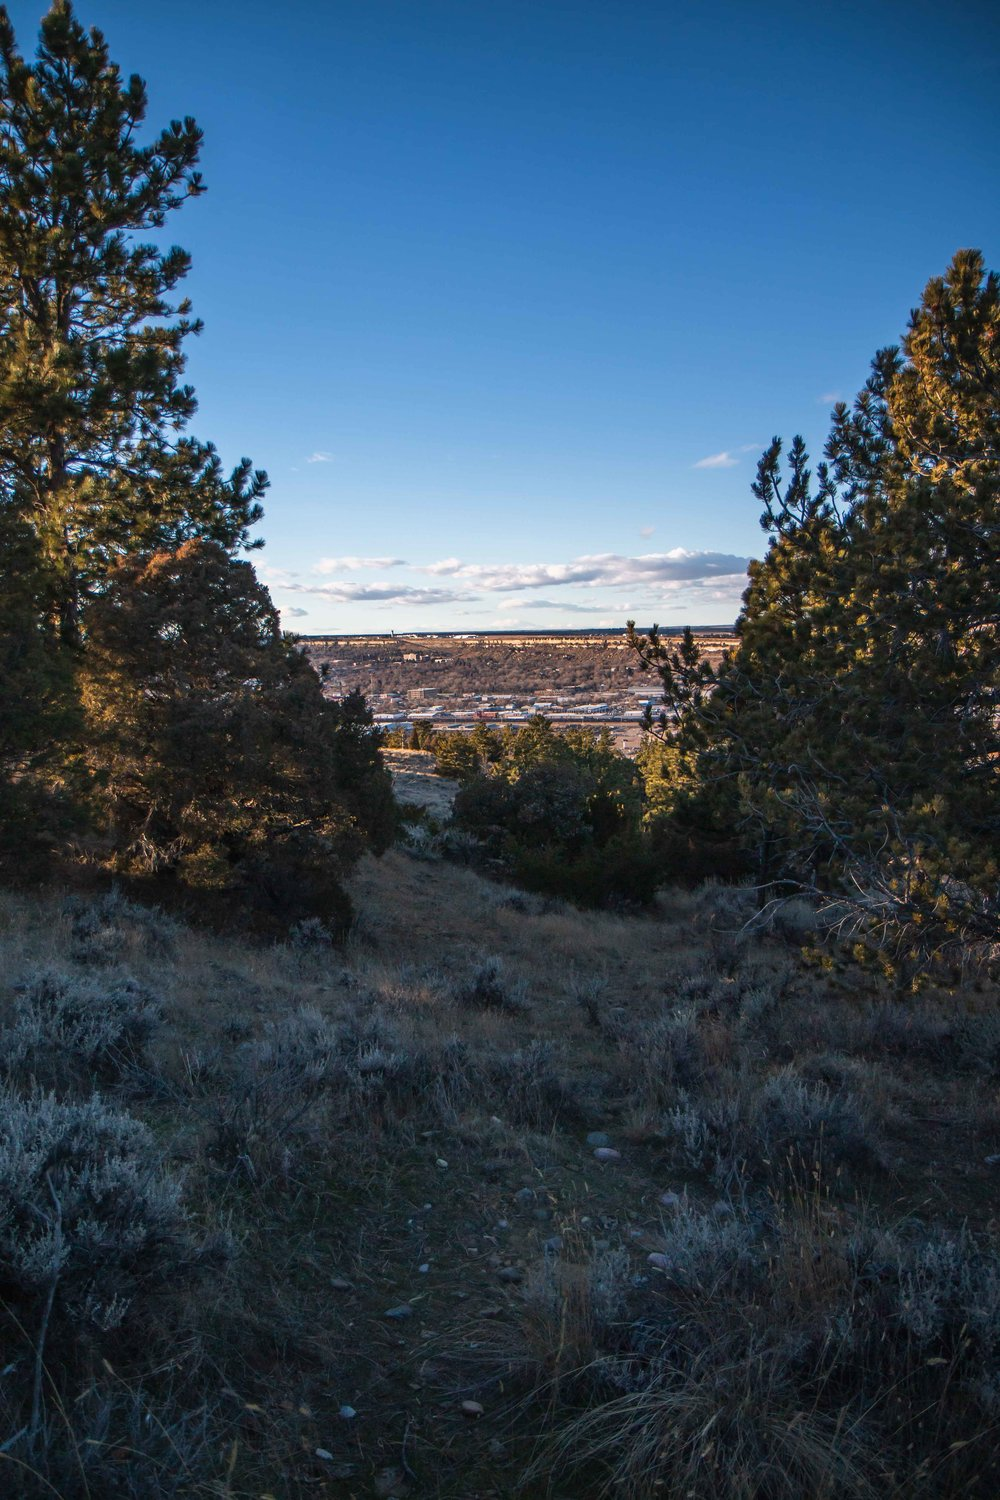 Four Dances Trail is a 2.6 mile loop trail located near Billings, Montana. The trail is rated as moderate and primarily used for hiking and trail running. Dogs are also able to use this trail but must be kept on leash.